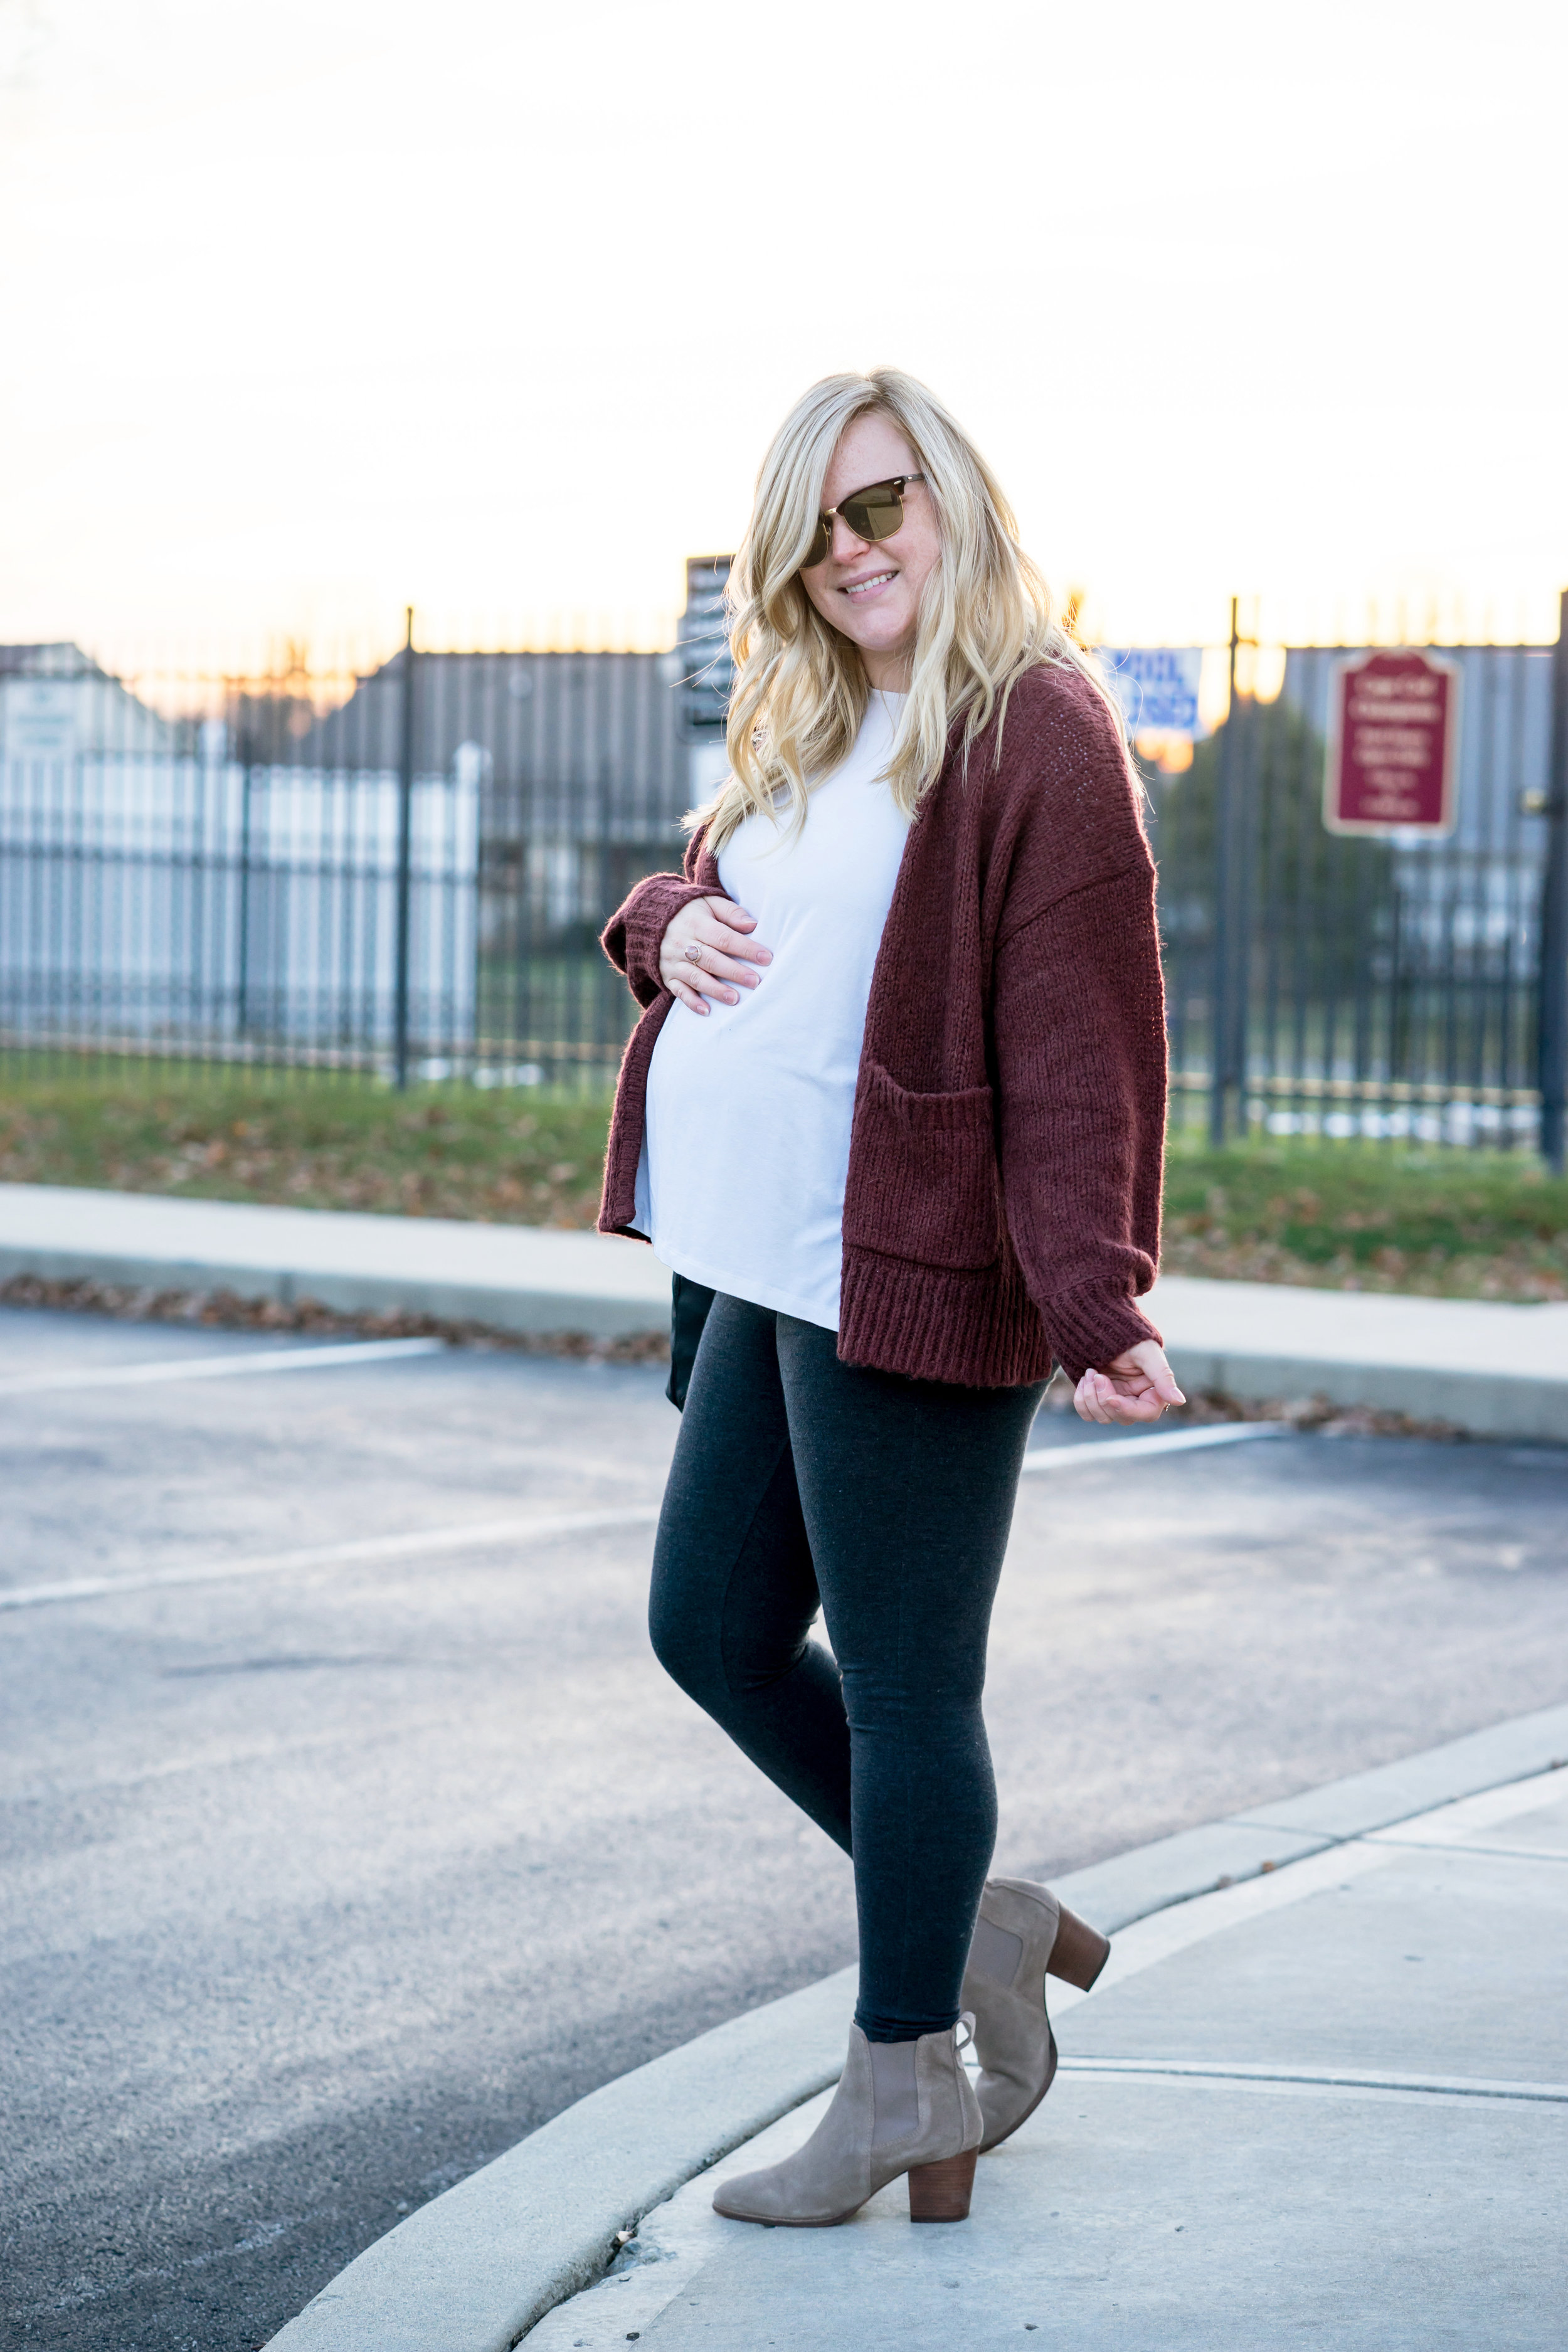 Maggie a la Mode - Where to get the best Maternity Clothing Essentials - Hatch The Long Sleeve Tee, Madewell Balloon-Sleeve Cardigan Sweater, Old Navy Maternity Full-Panel Leggings, Henri Bendel Jetsetter Mini Convertible Nylon Backpack, Madewell The Regan Suede Boots